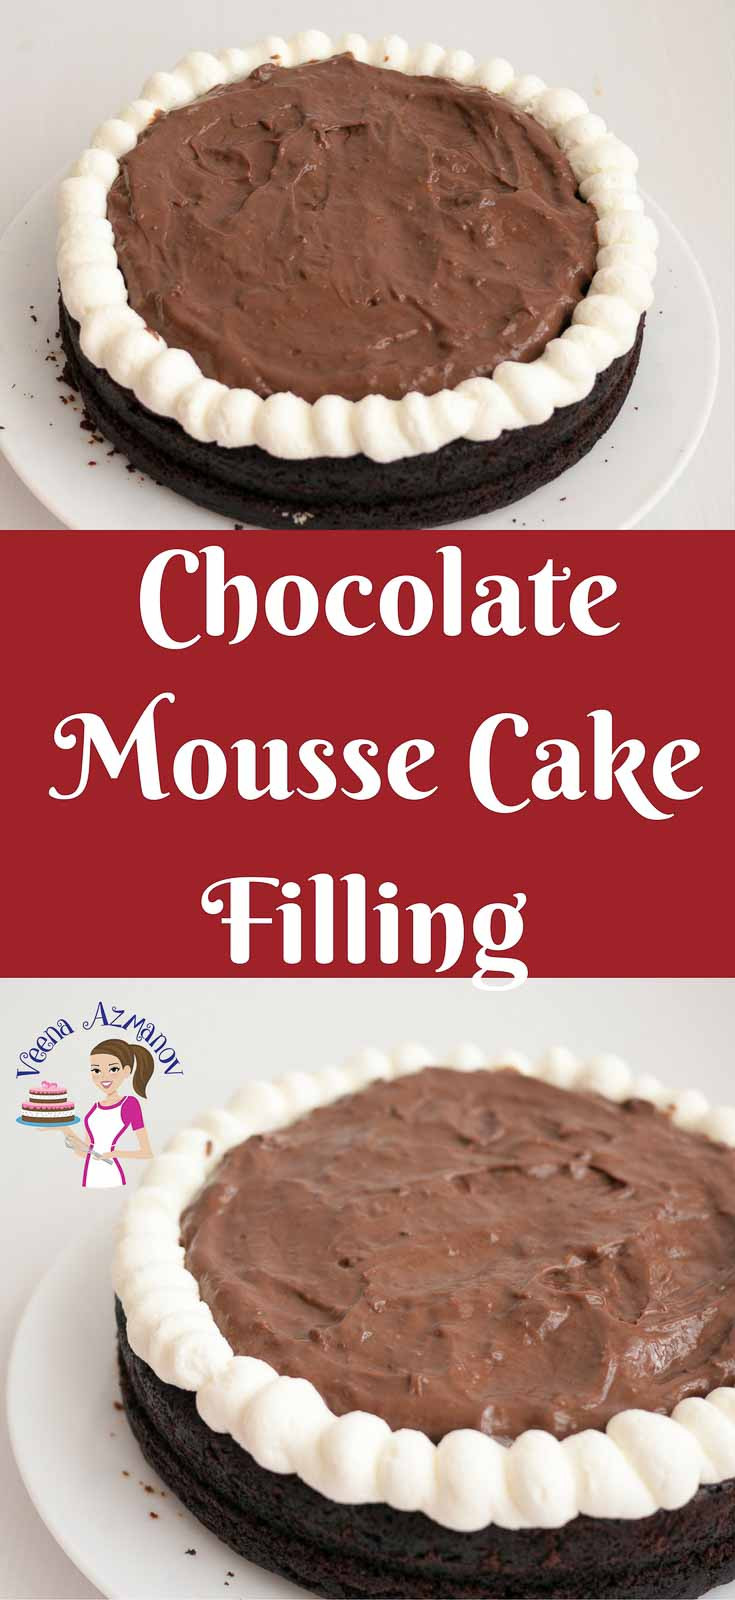 Chocolate Mousse Cake Filling  The BEST Chocolate Mousse Cake Filling Recipe Veena Azmanov